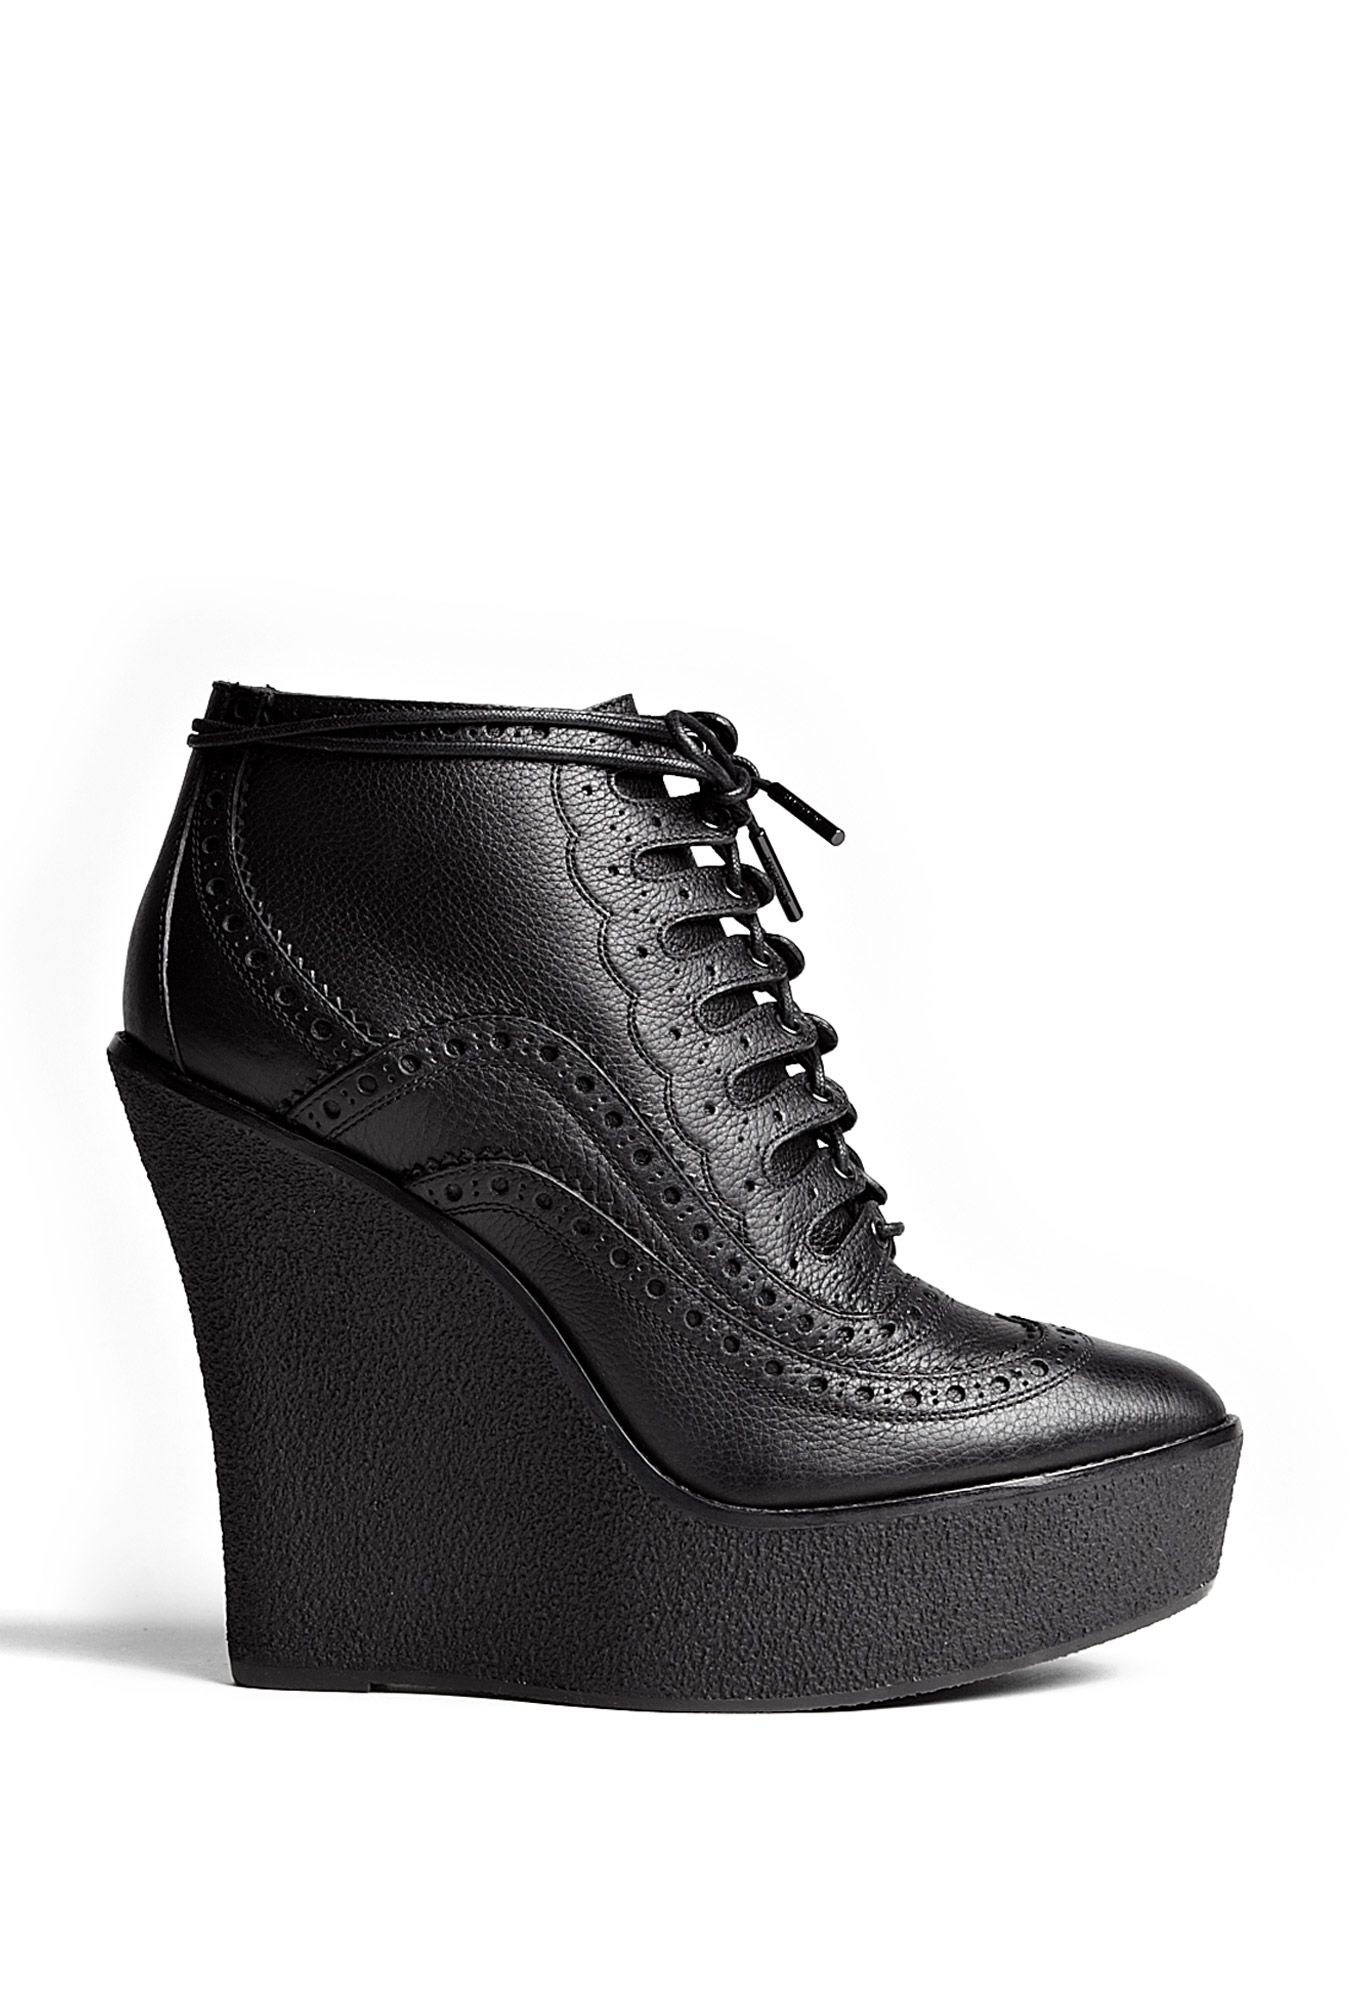 Dereon Boots My Posh Picks T Boots Shoes Heels Boots